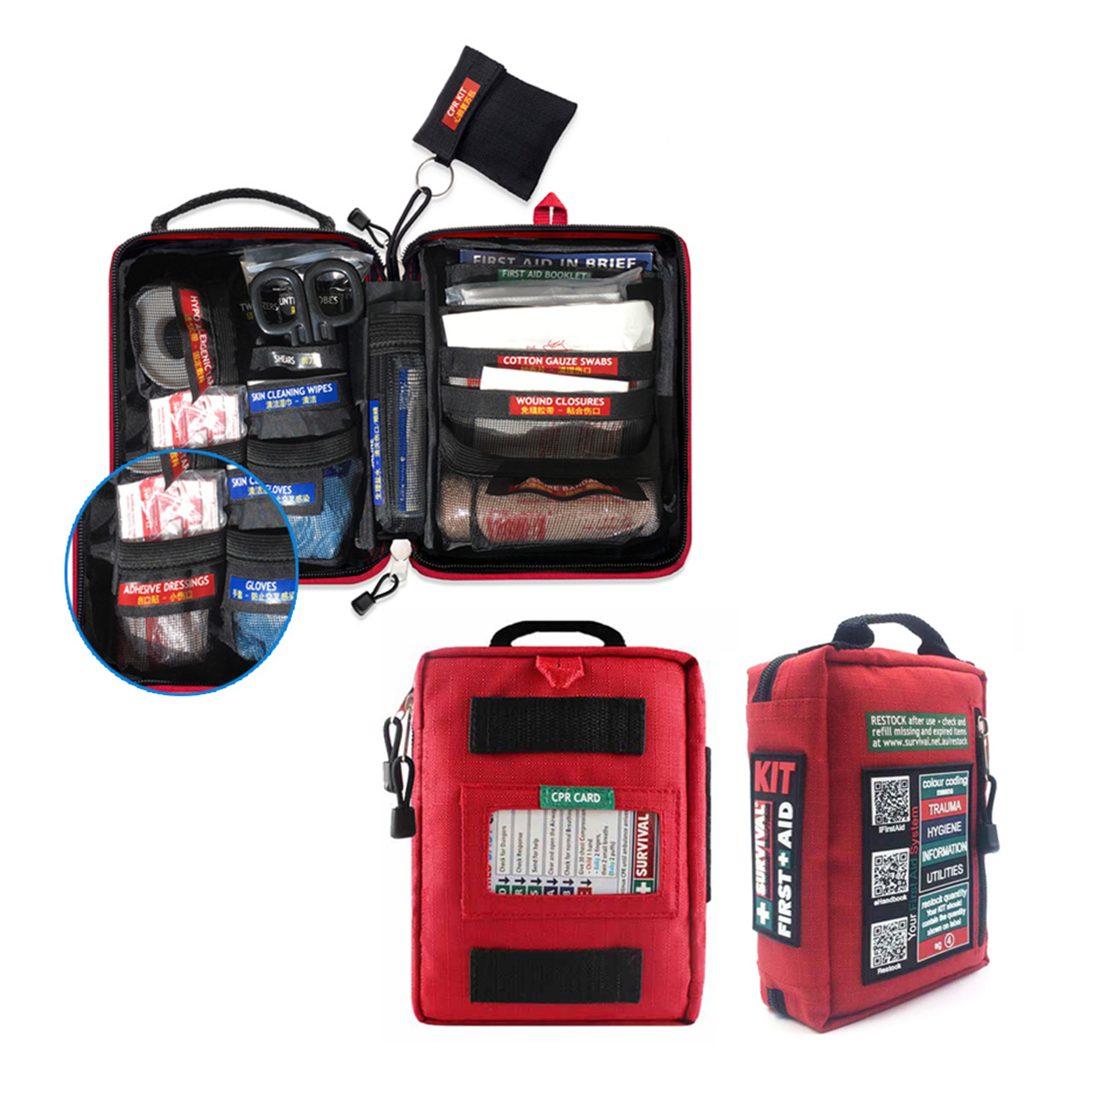 Portable Mini First Aid Kit Travel Medicine Bag Small Medical Organizer Storage Pouch Pill Drug Package Container Survival Kits